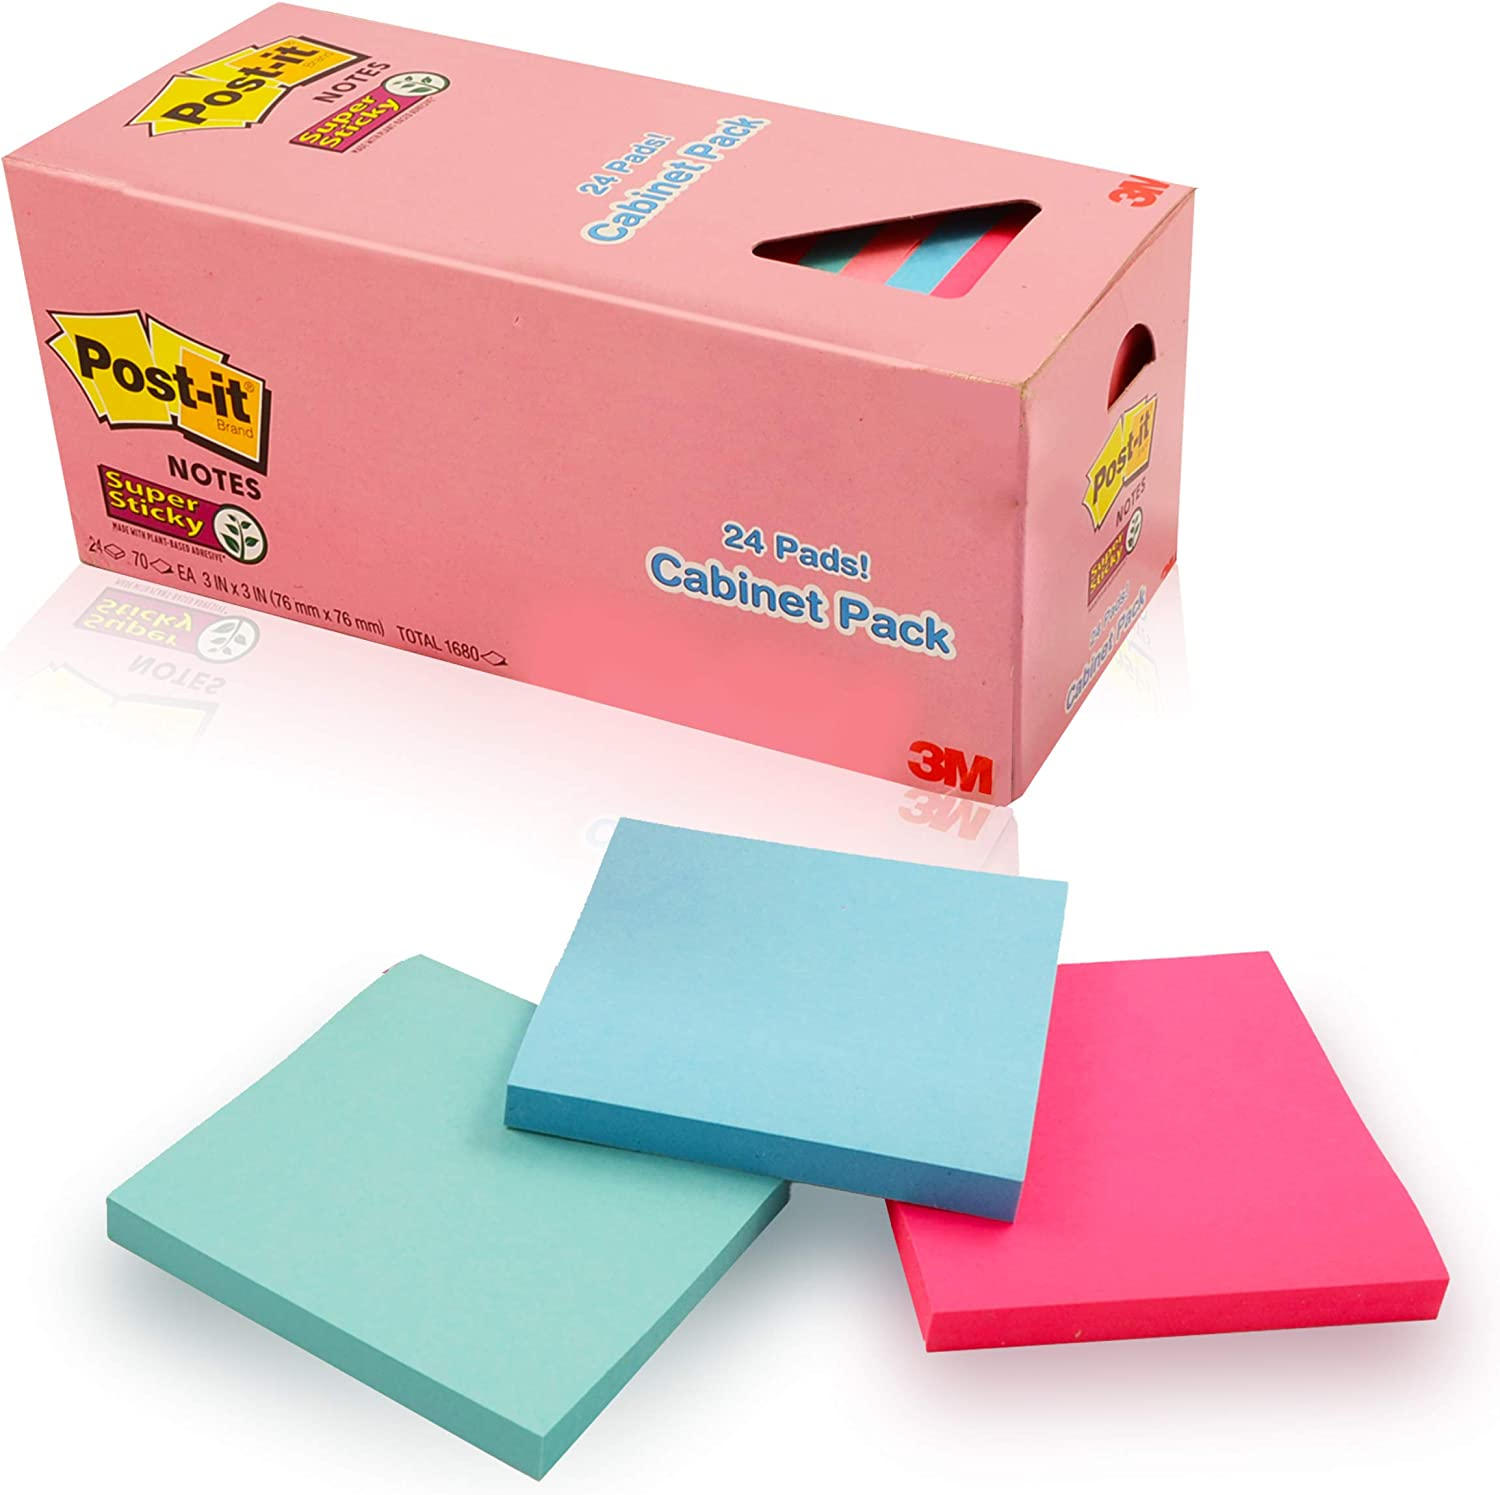 Sticky Notes Cabinet Pack Pastel Colors ~ 24 Pack 3x3 Self-Stick Pads in Colorful Blue, Teal, Pink, and Magenta (Office Supplies | Office Essentials)